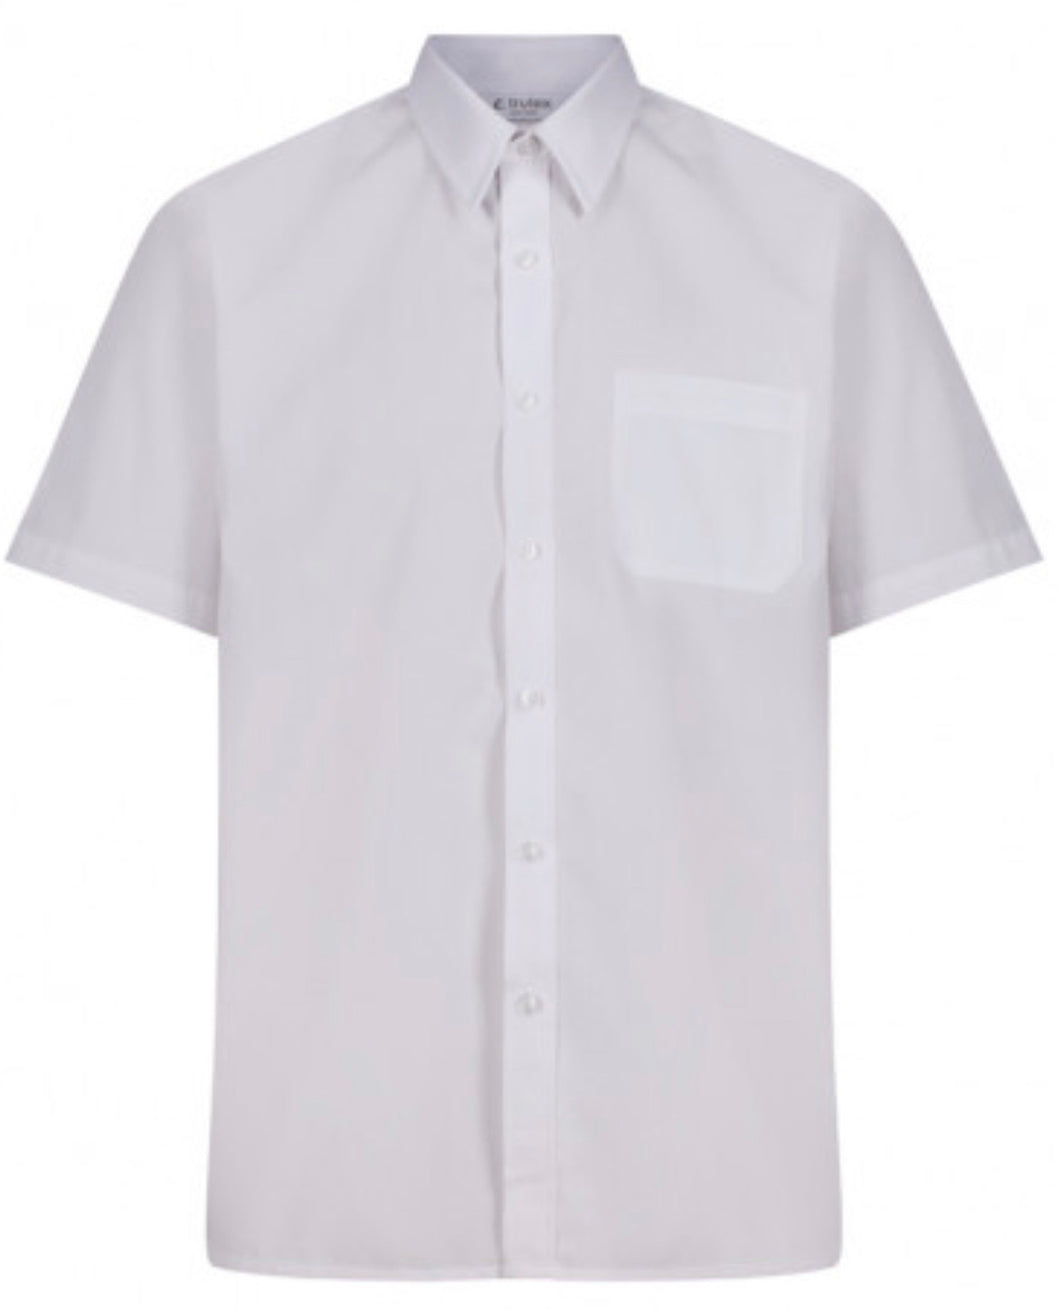 1 Pack Boys White Short Sleeve Shirt